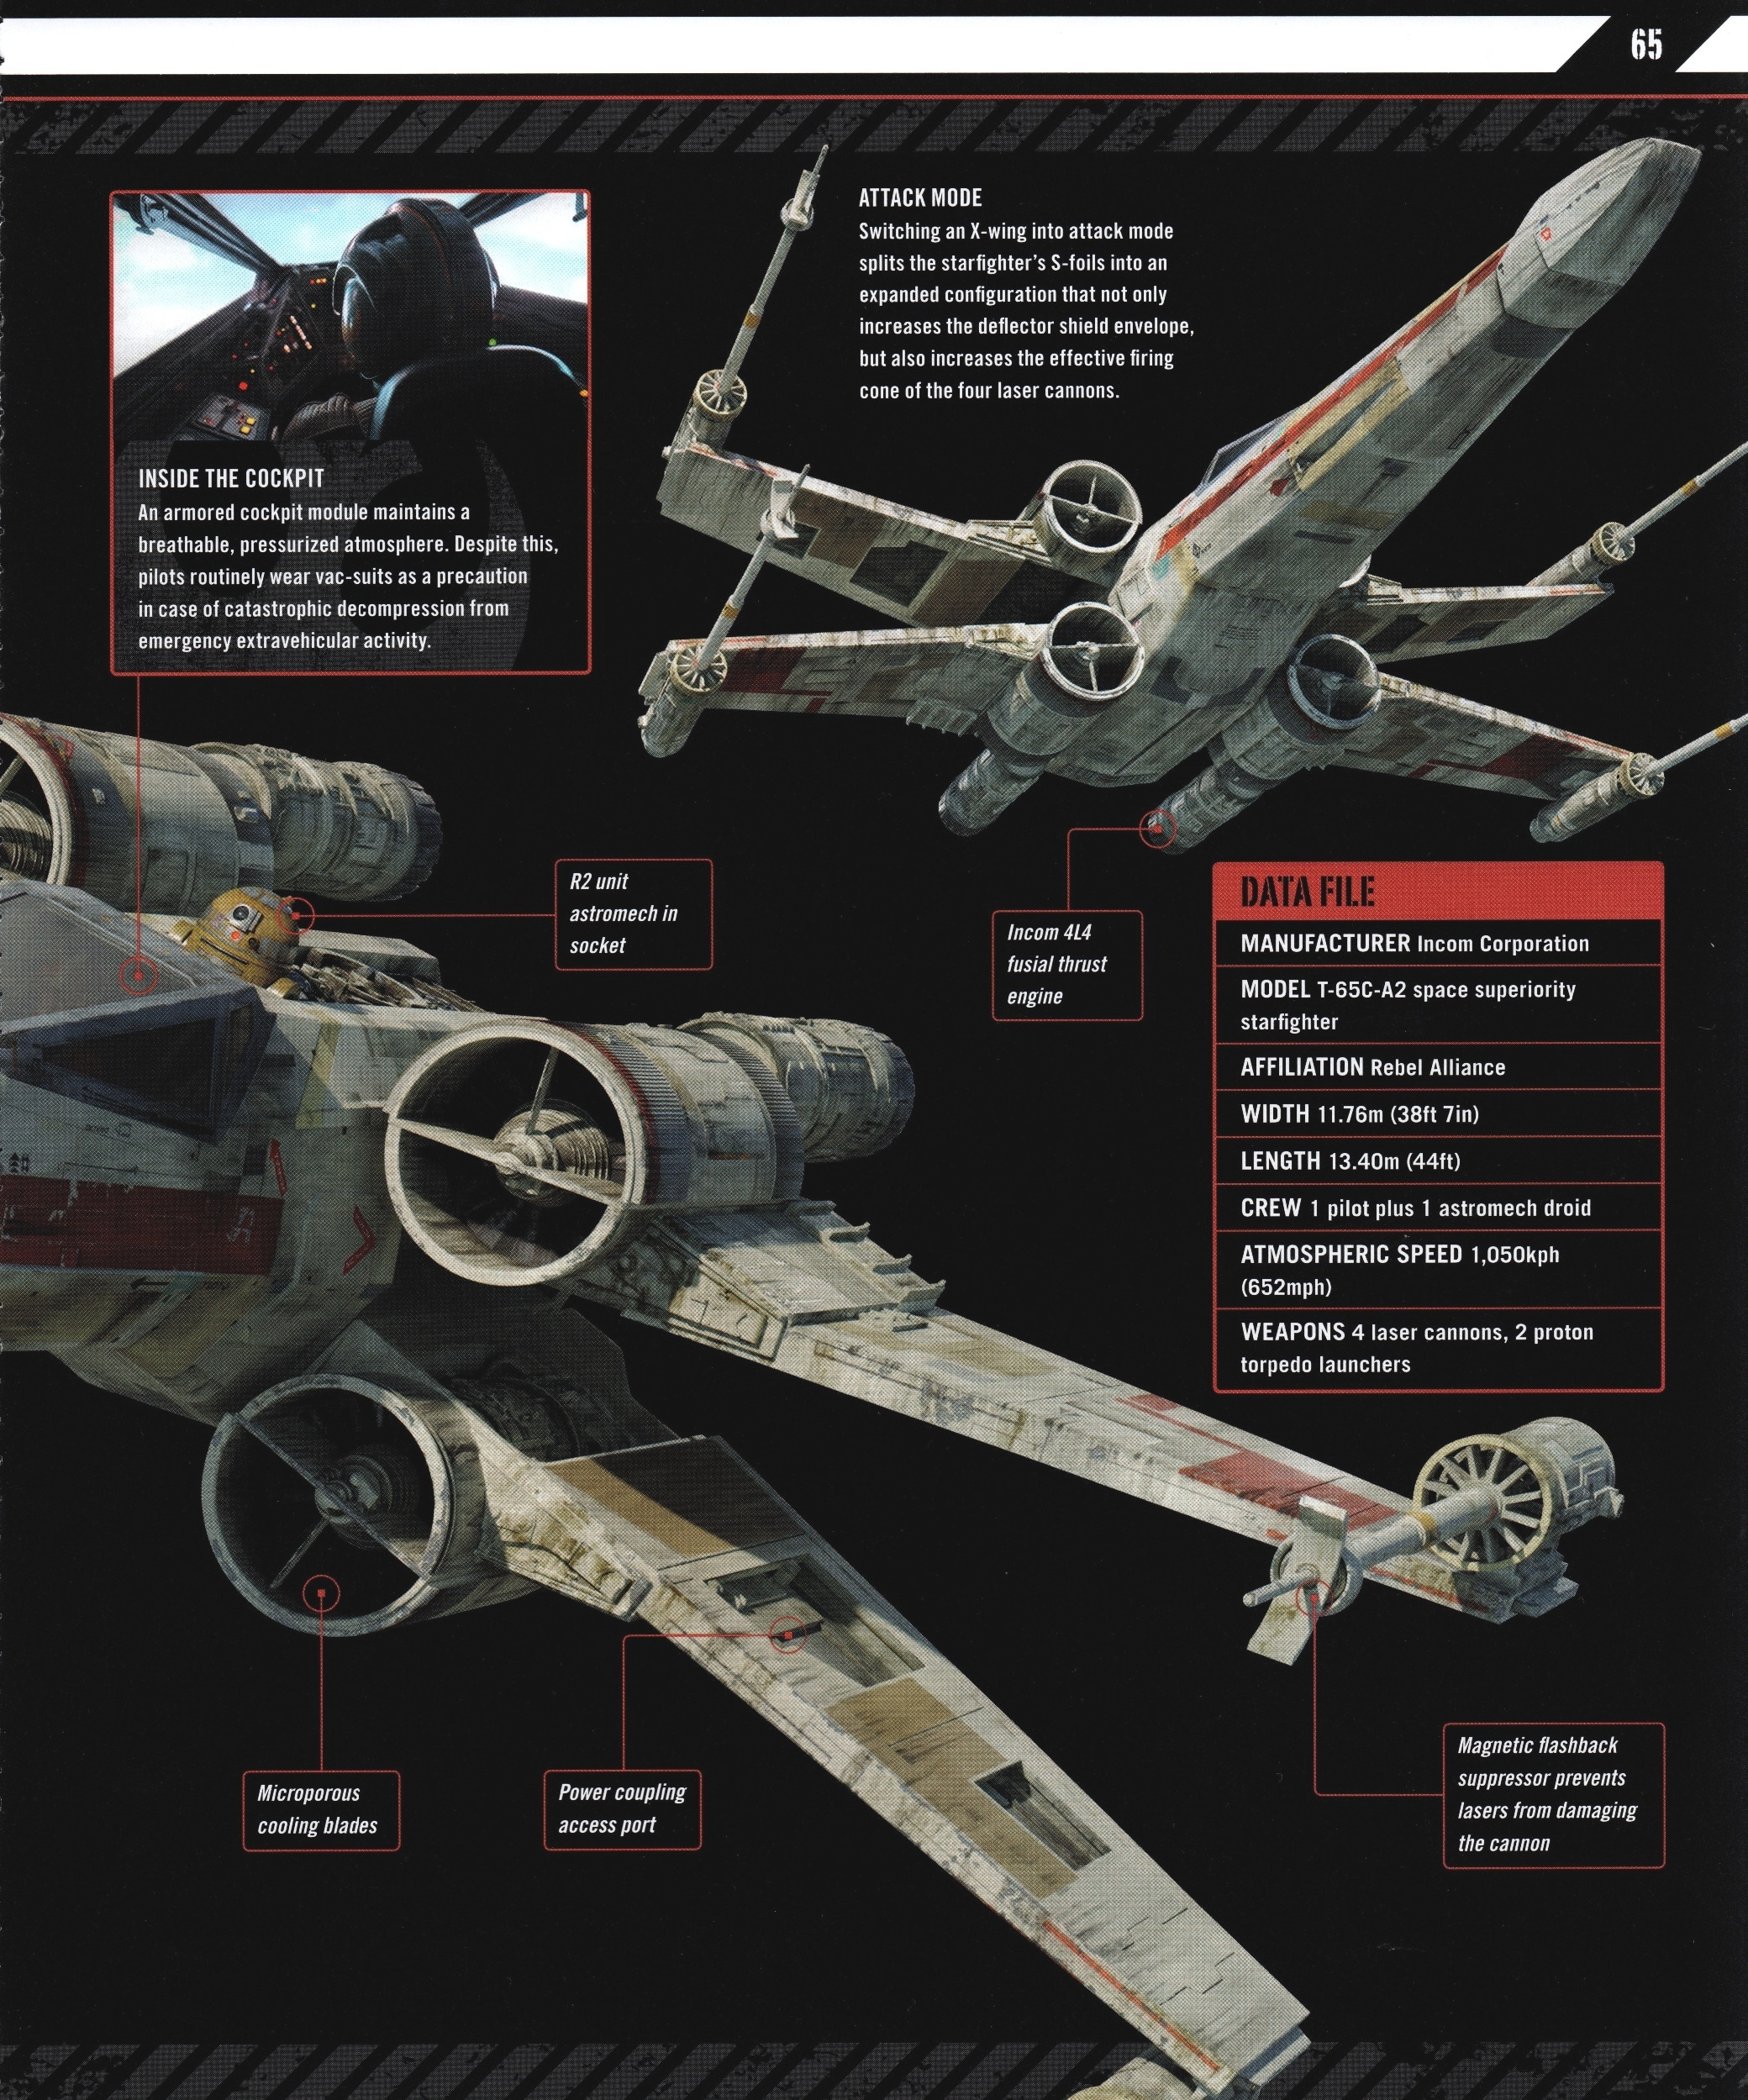 Rogue One Ultimate Visual Guide (b0bafett_Empire) p065